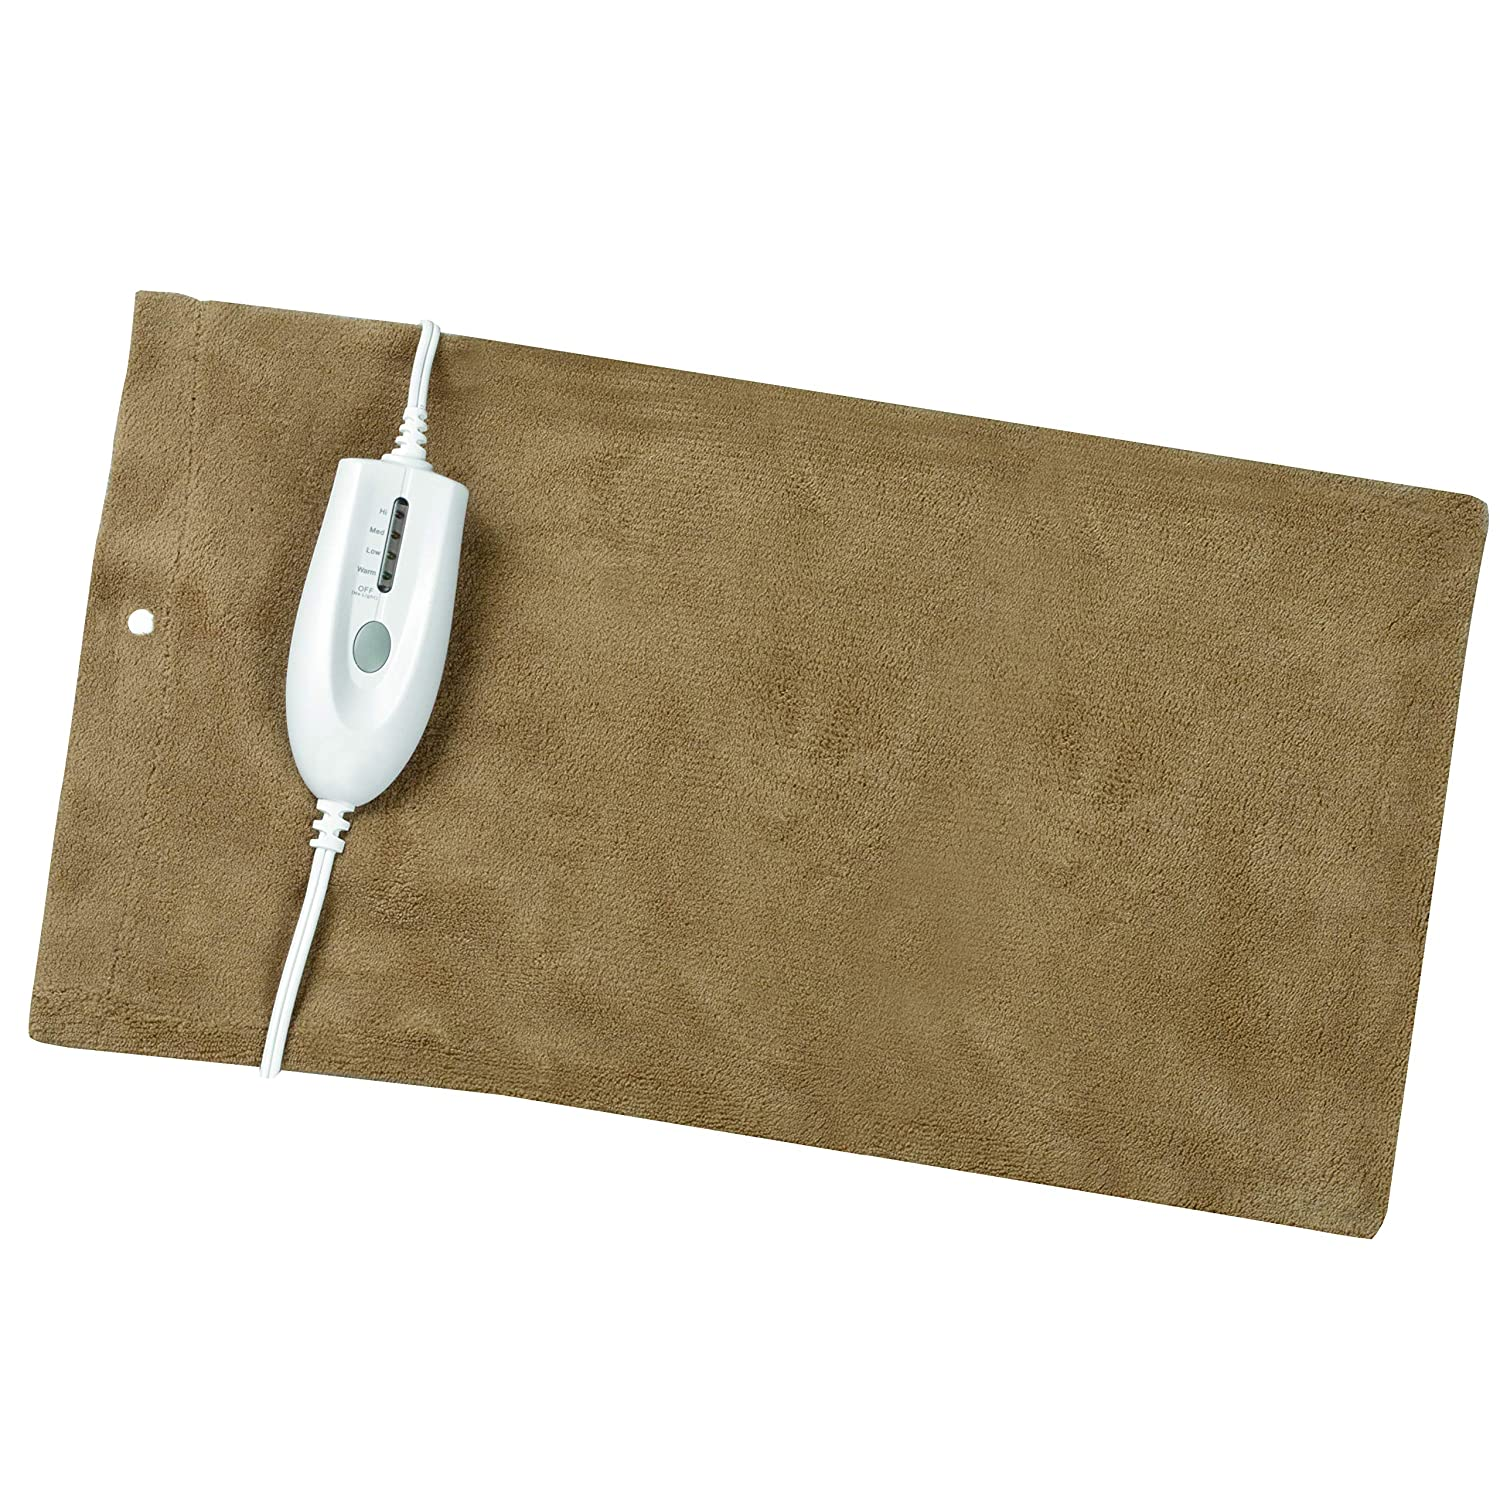 HealthWise Deluxe XL Heating Pad